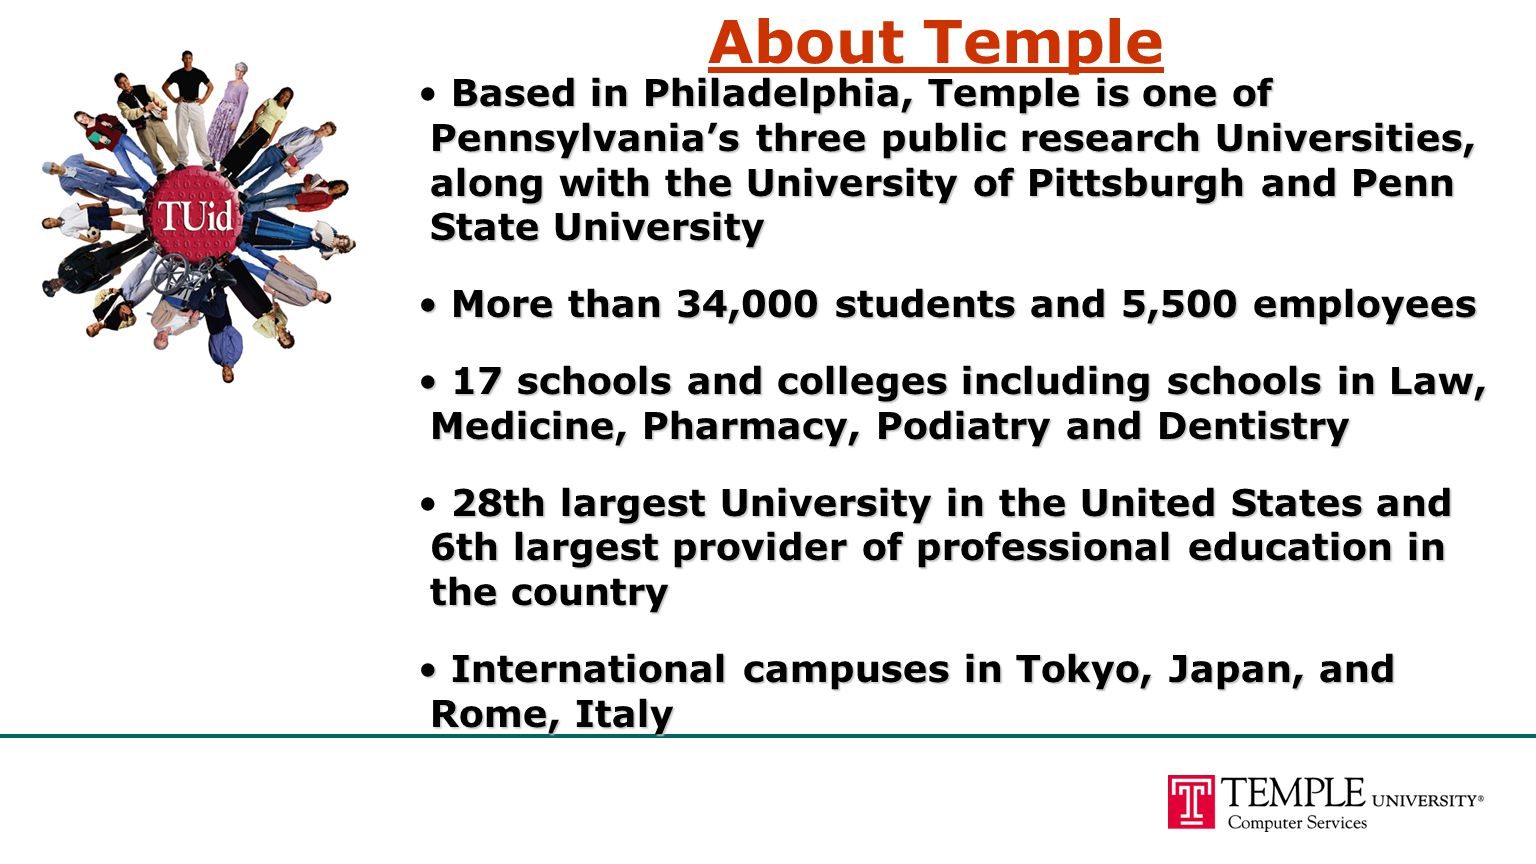 About Temple Based in Philadelphia, Temple is one of Pennsylvania's three public research Universities, along with the University of Pittsburgh and Pe